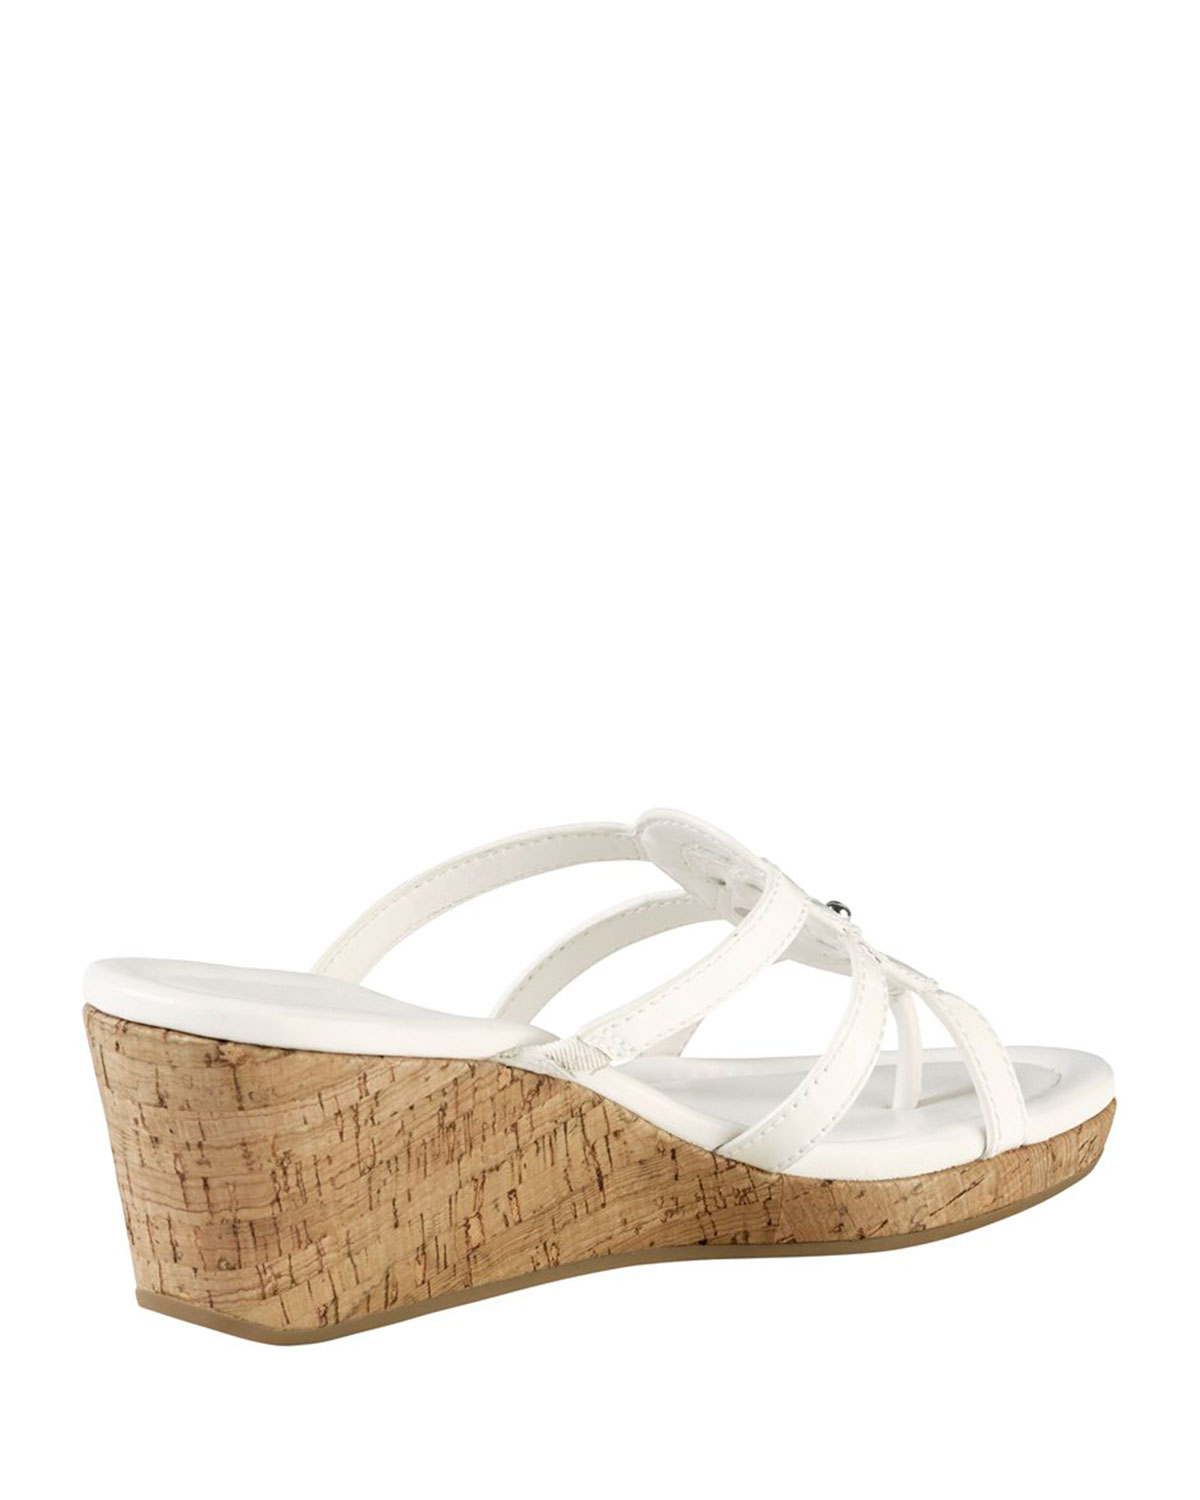 Cole Haan Shayla Patent Thong Wedge Sandal In White Lyst